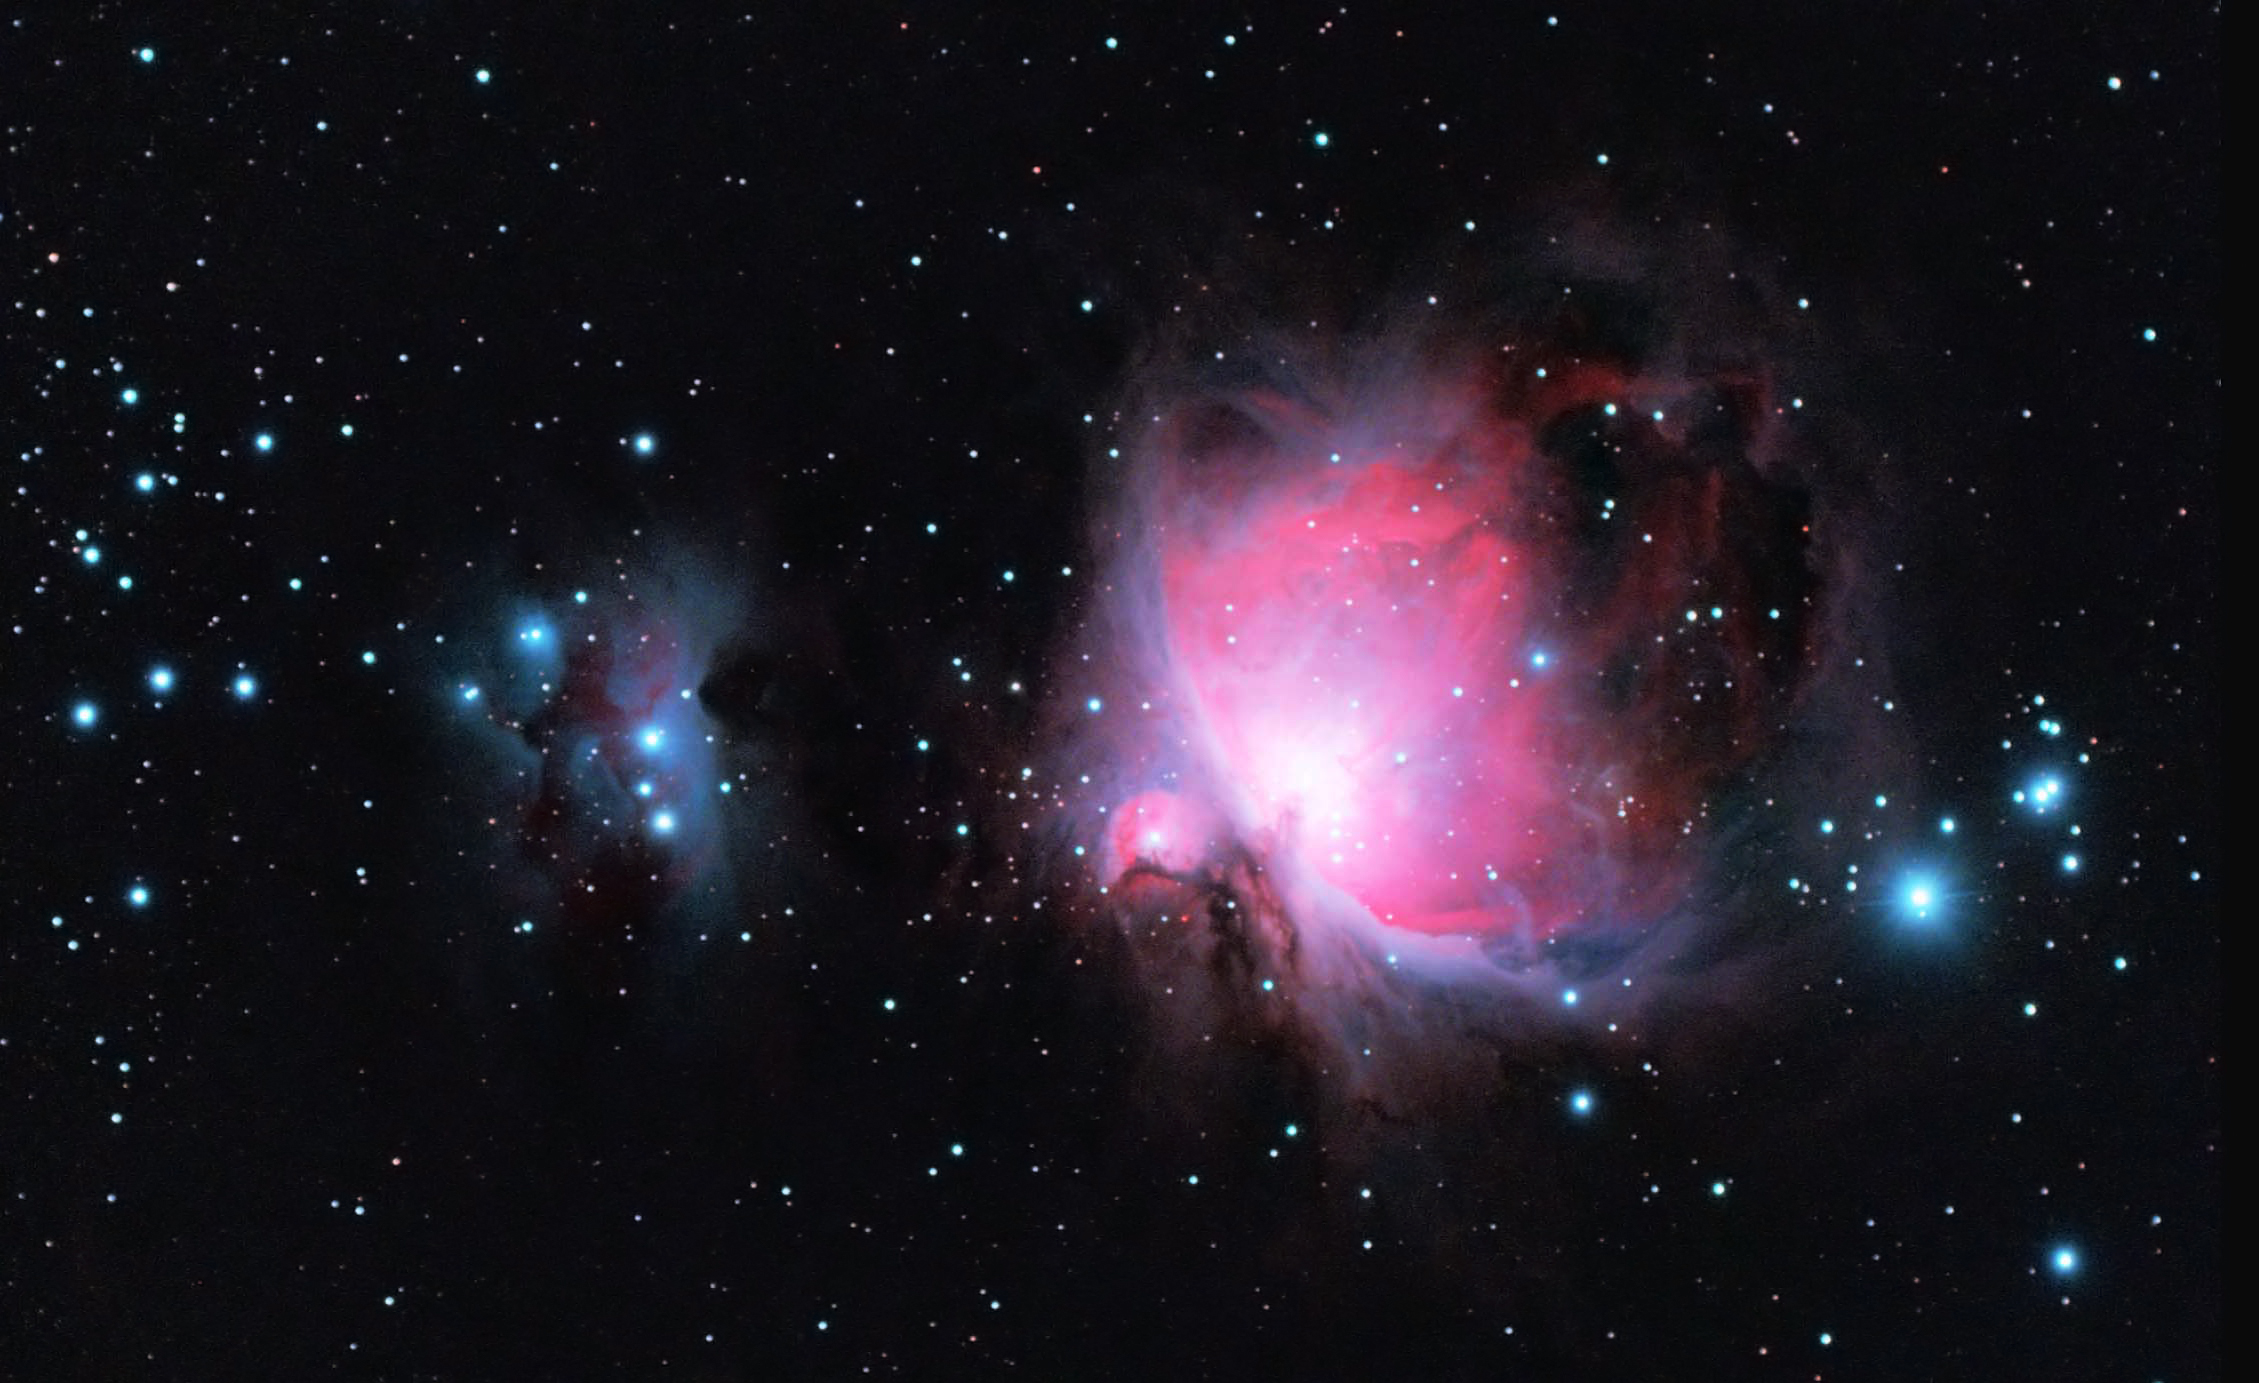 Orion & Running Man Nebua